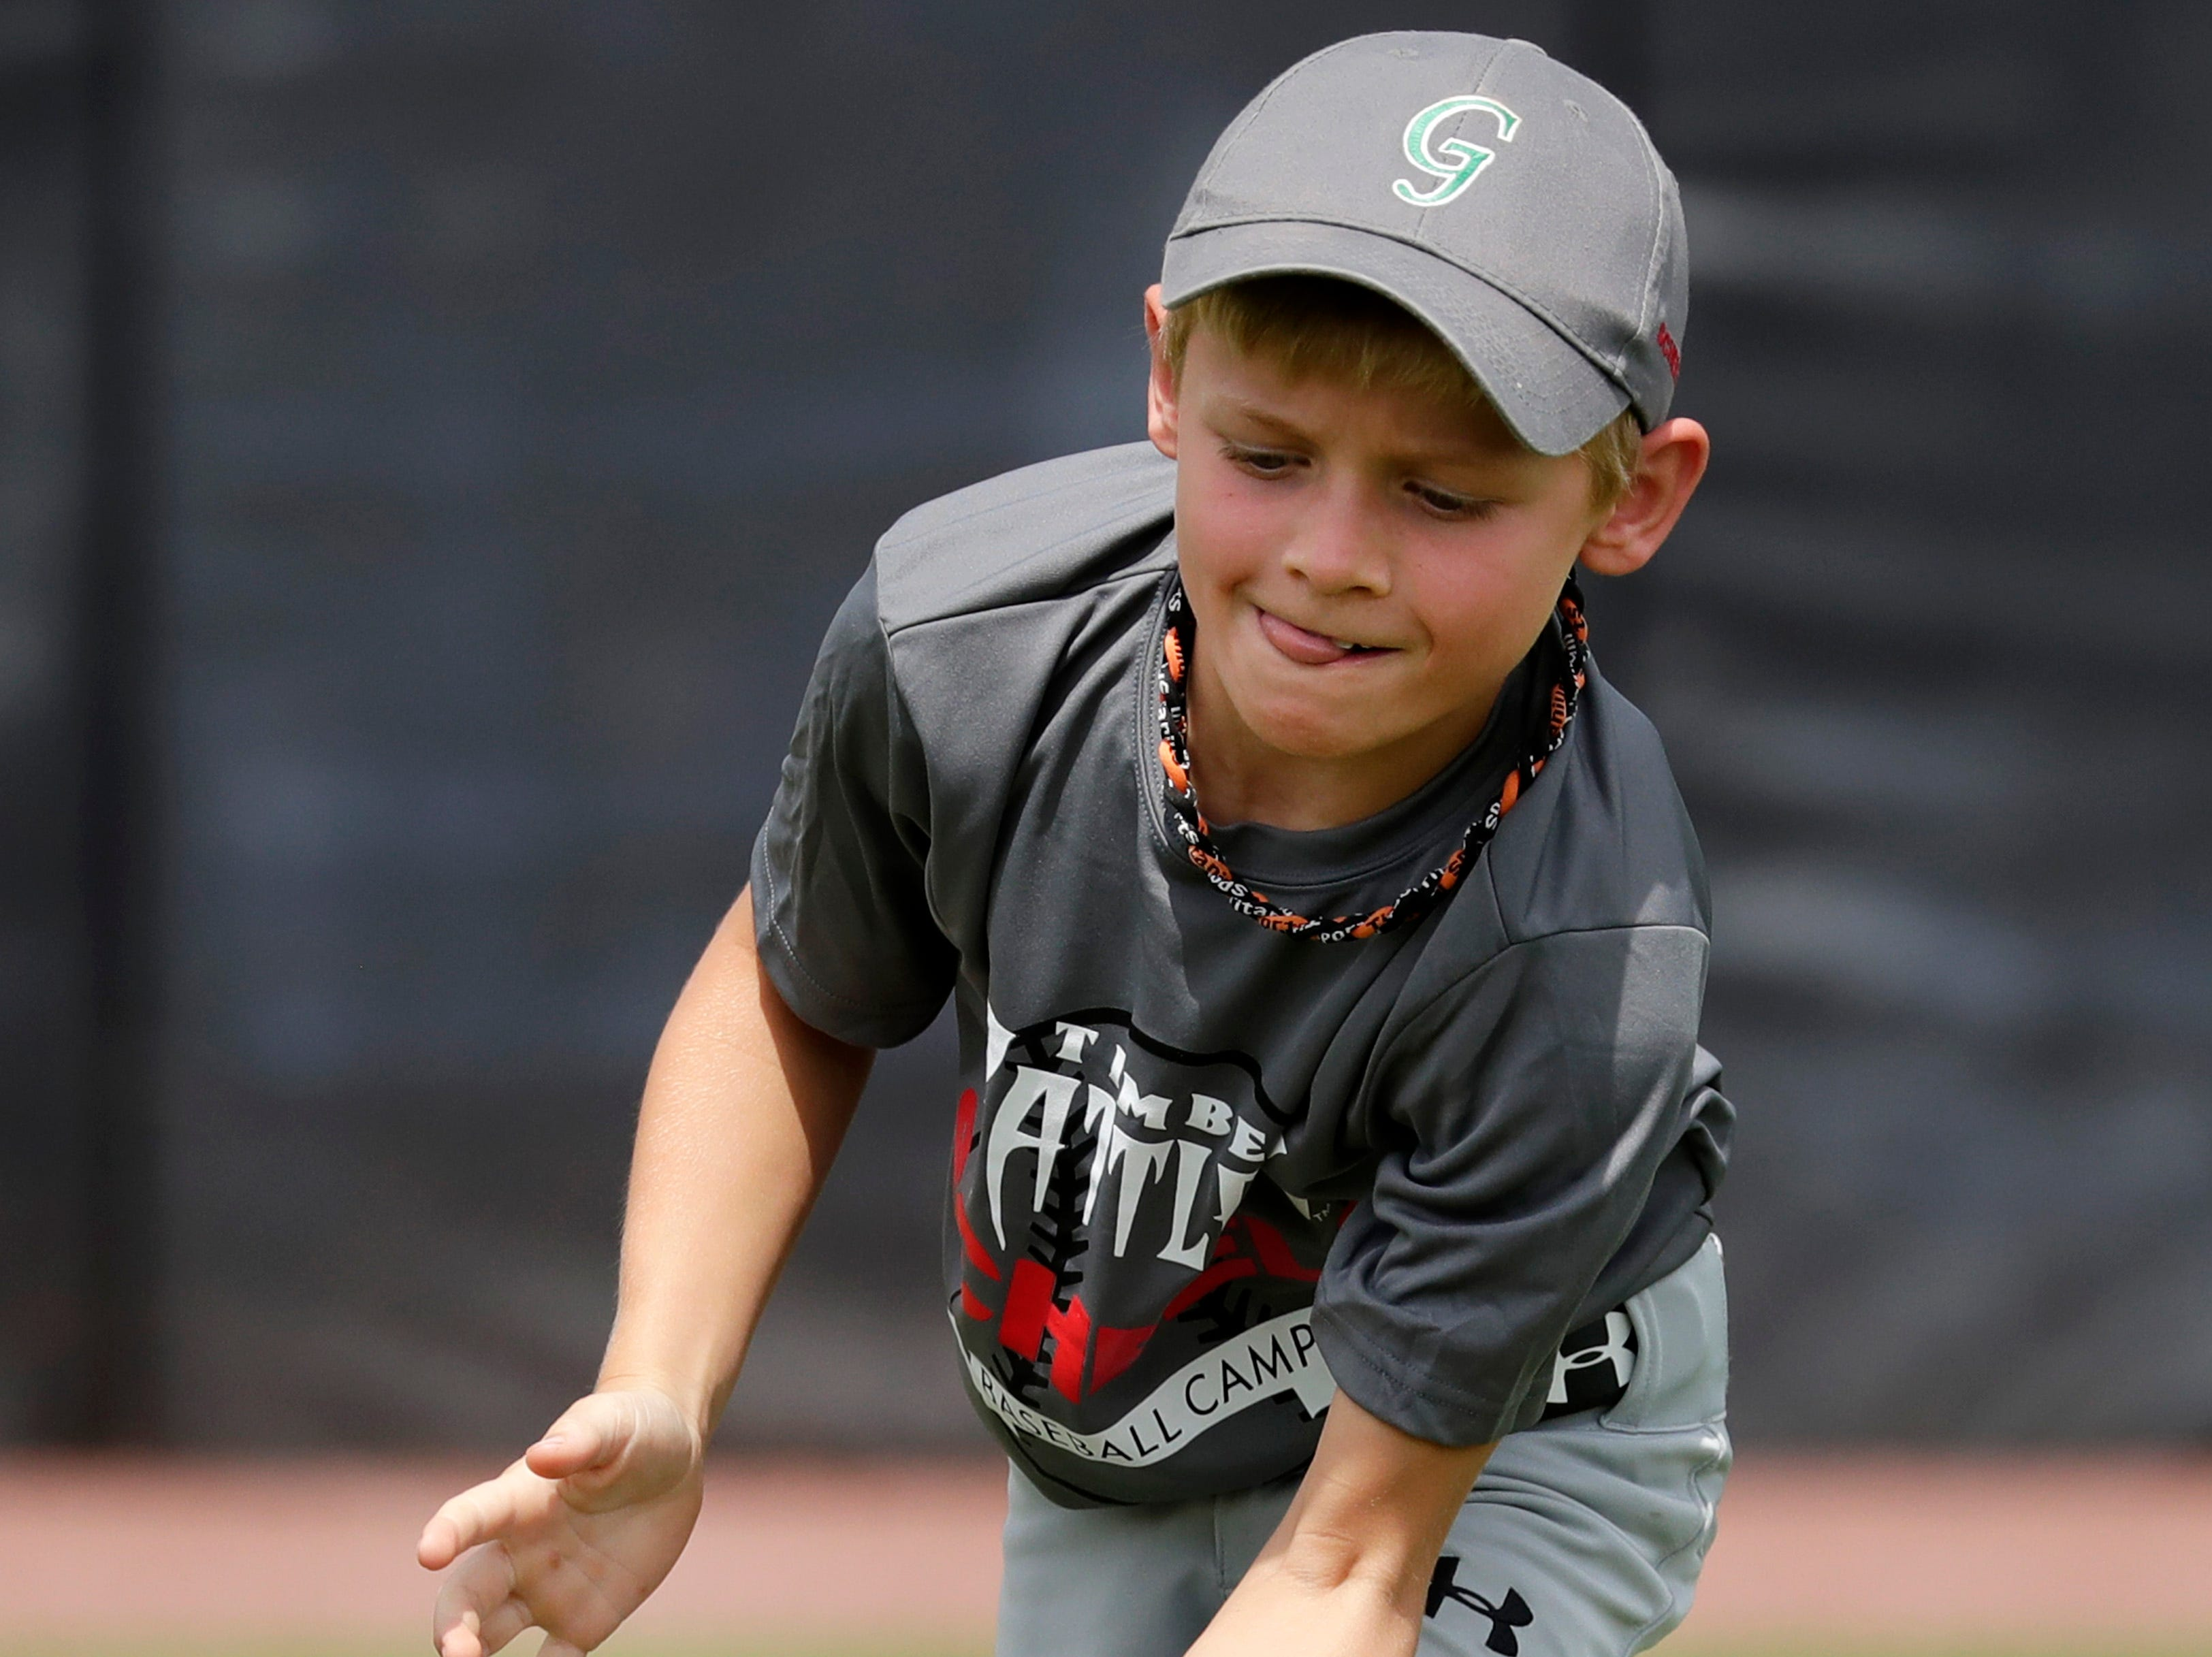 Jaxson Sroka, 9, makes a catch during the Scheels Kids Camp with the Wisconsin Timber Rattlers Thursday, July 19, 2018, at Neuroscience Group Field at Fox Cities Stadium in Grand Chute, Wis. 